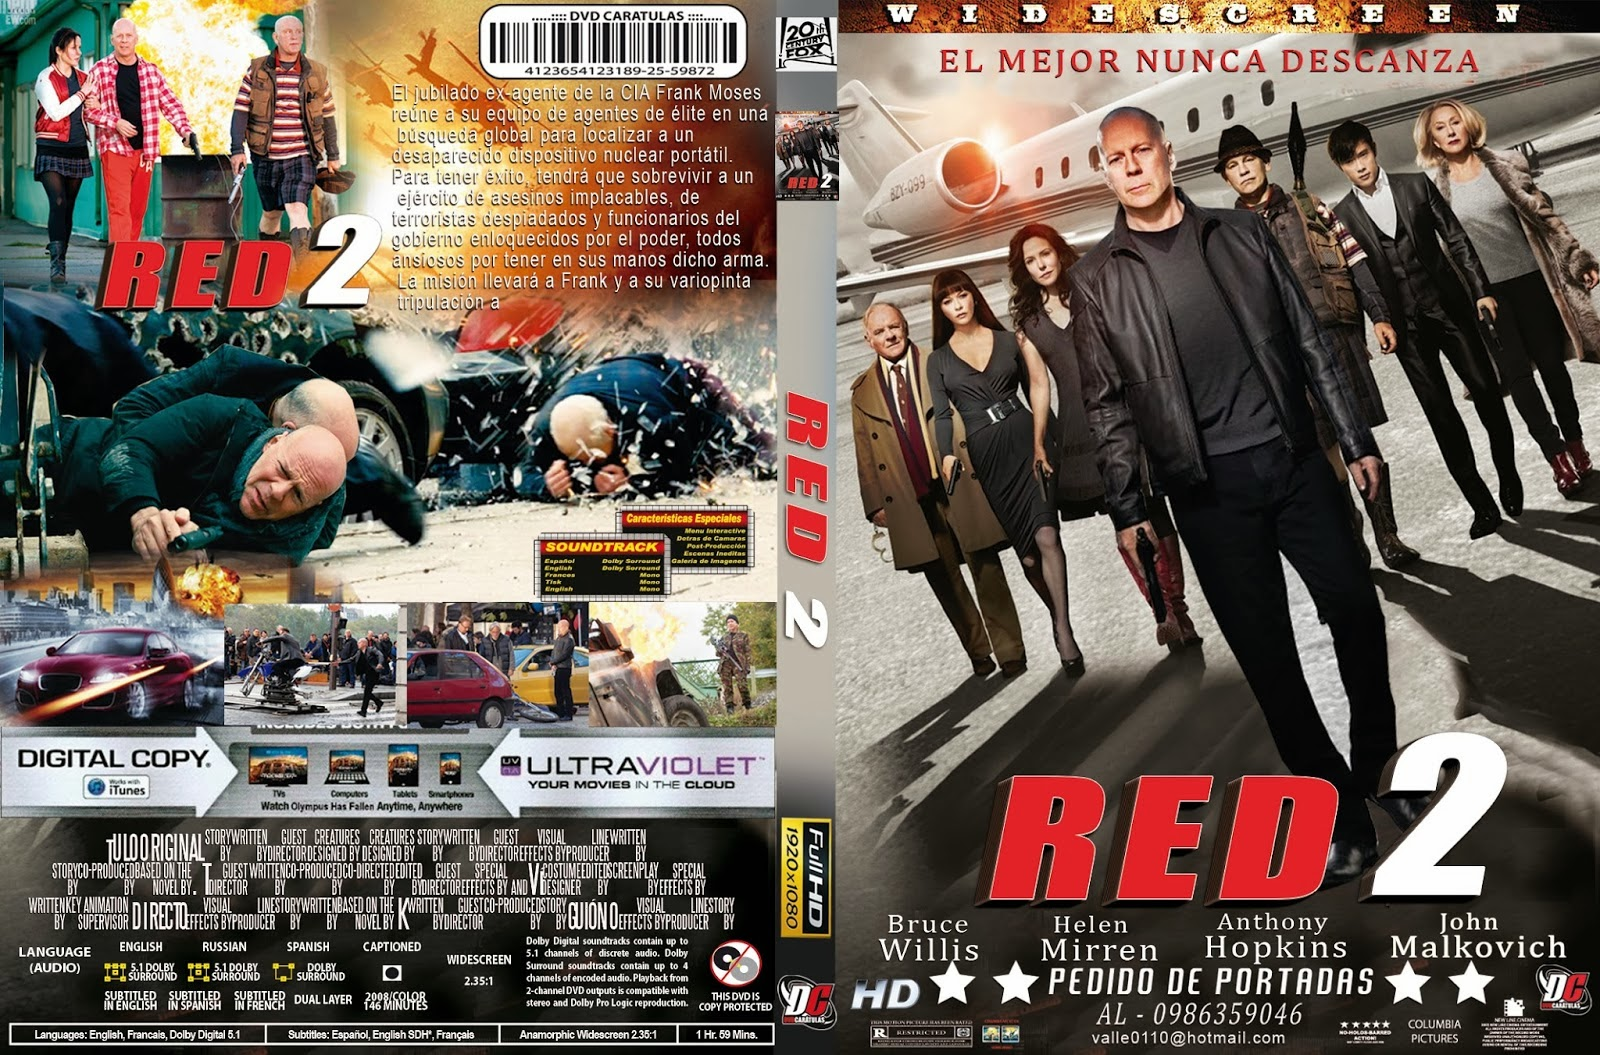 Red 2 Dvd Cover Red 2 ...